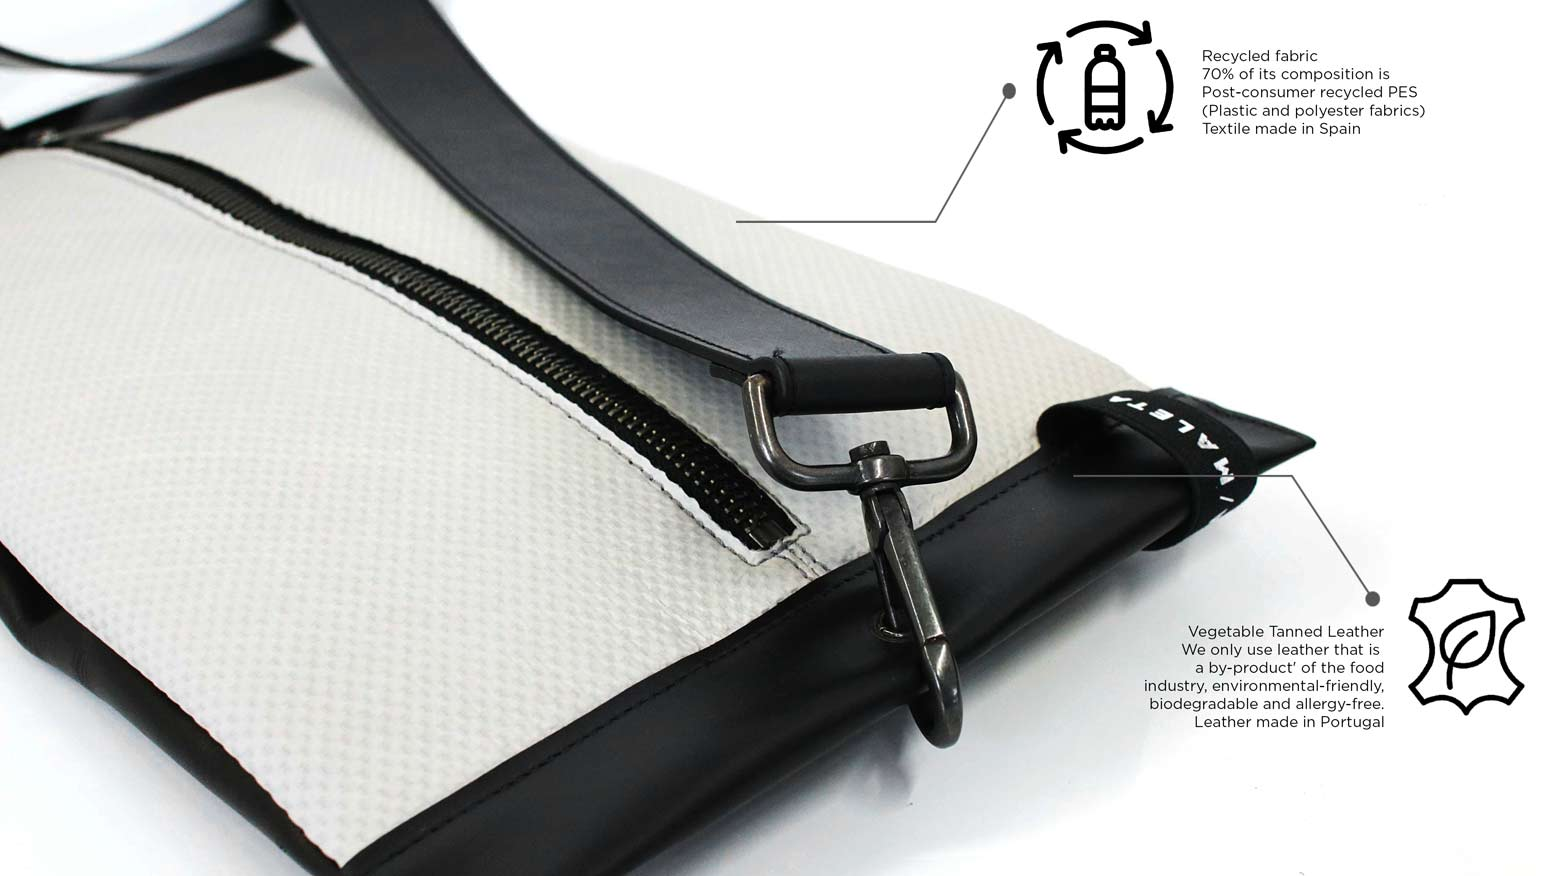 sustainable-leather-bags-brand